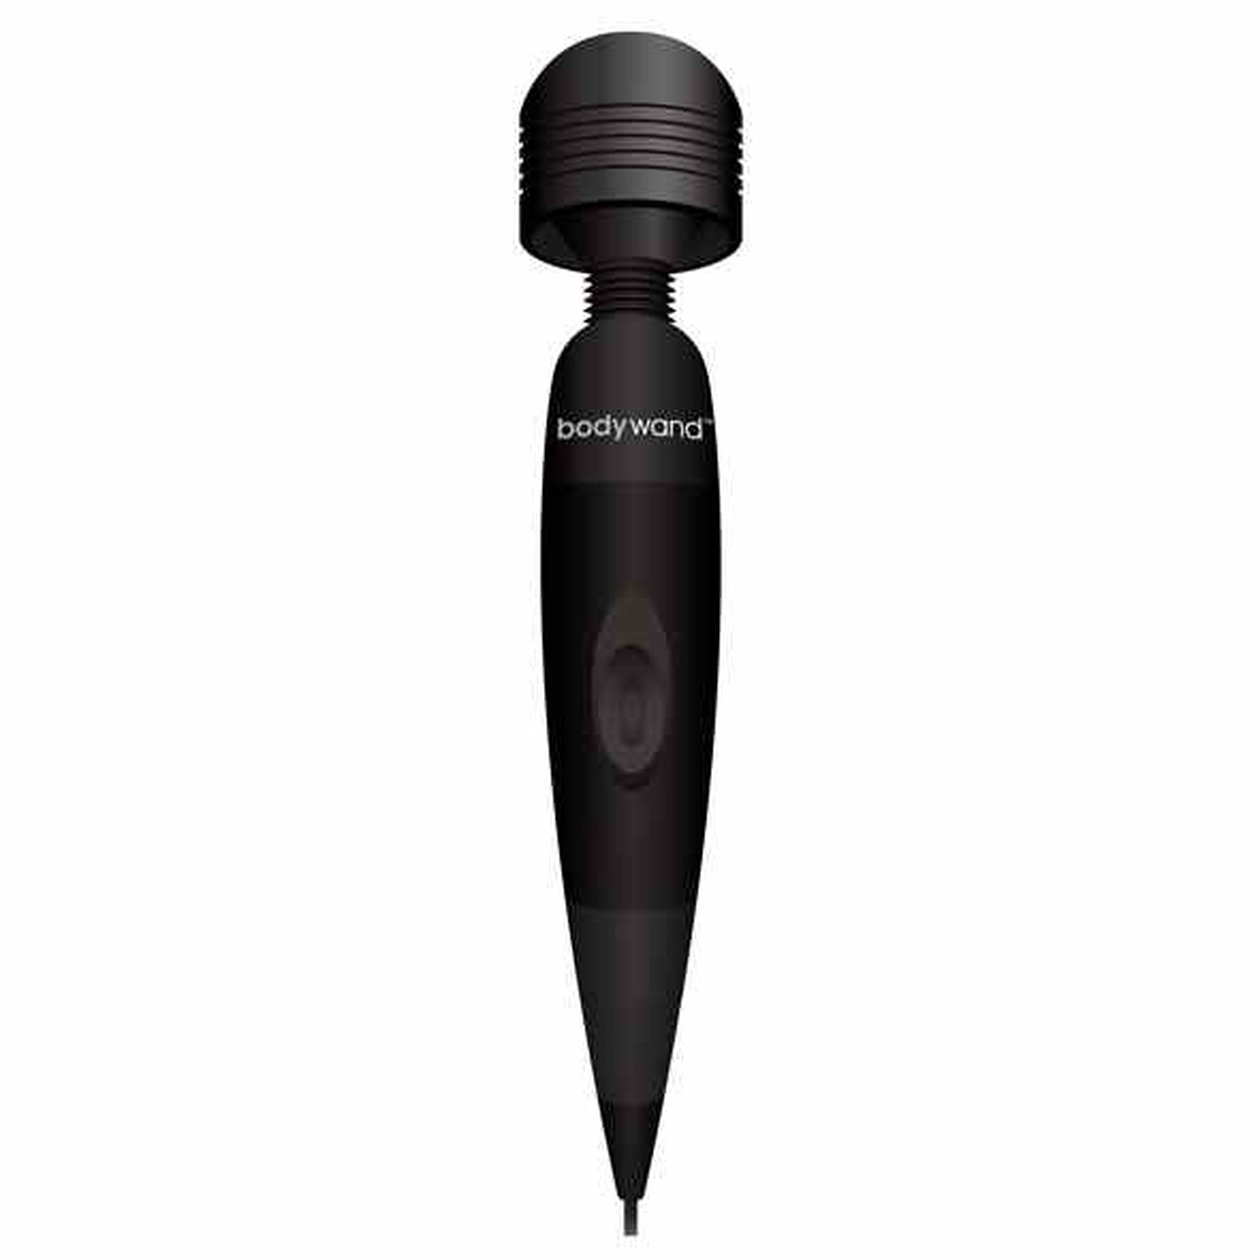 Bodywand - Midnight Plug-In Wand Massager Black